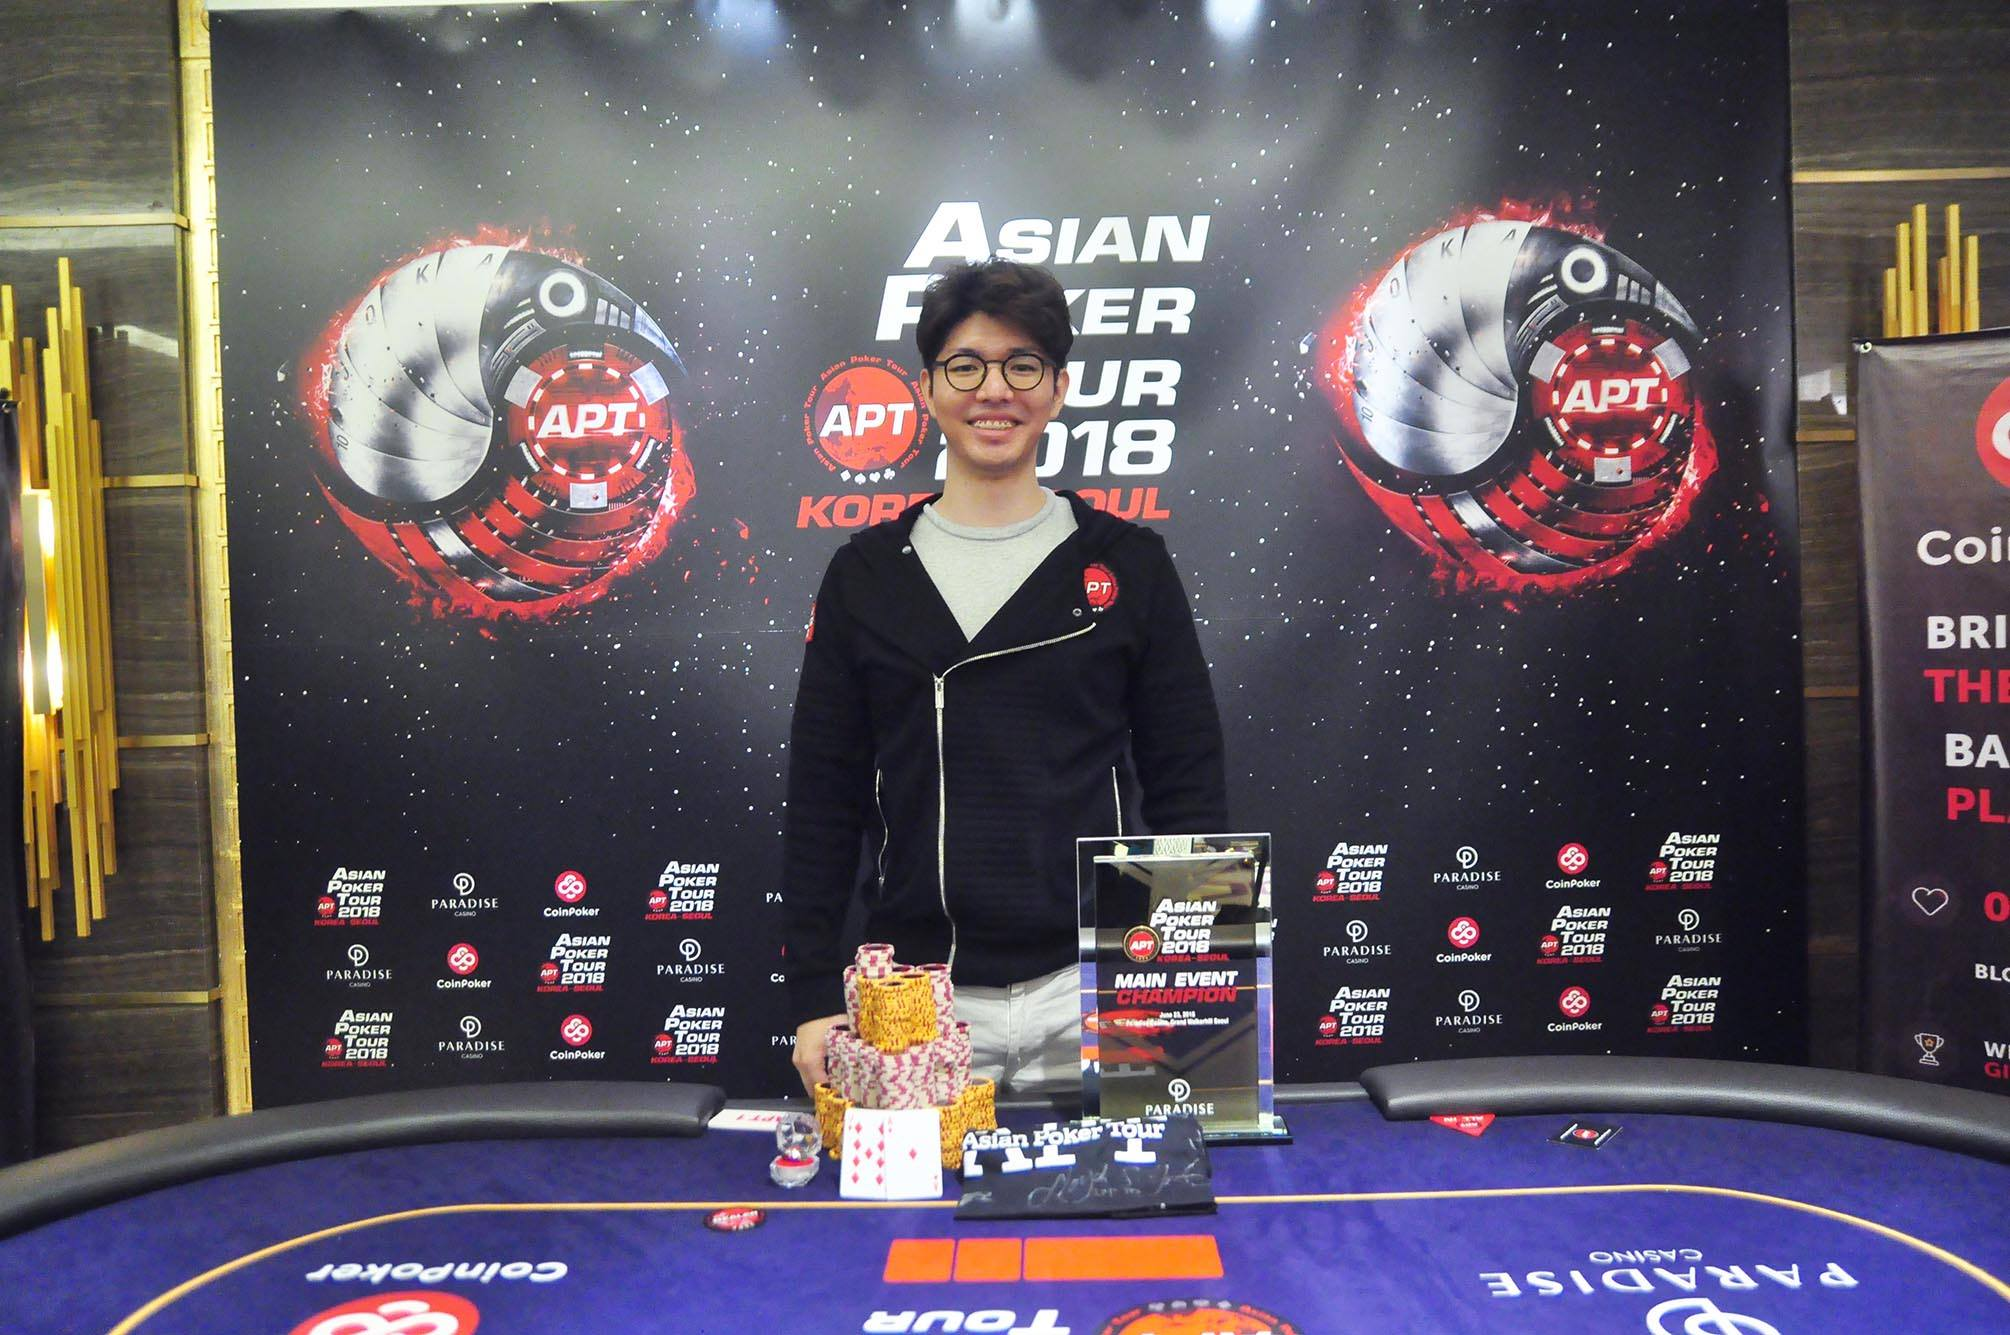 Online Casinos Accepting Asian Players